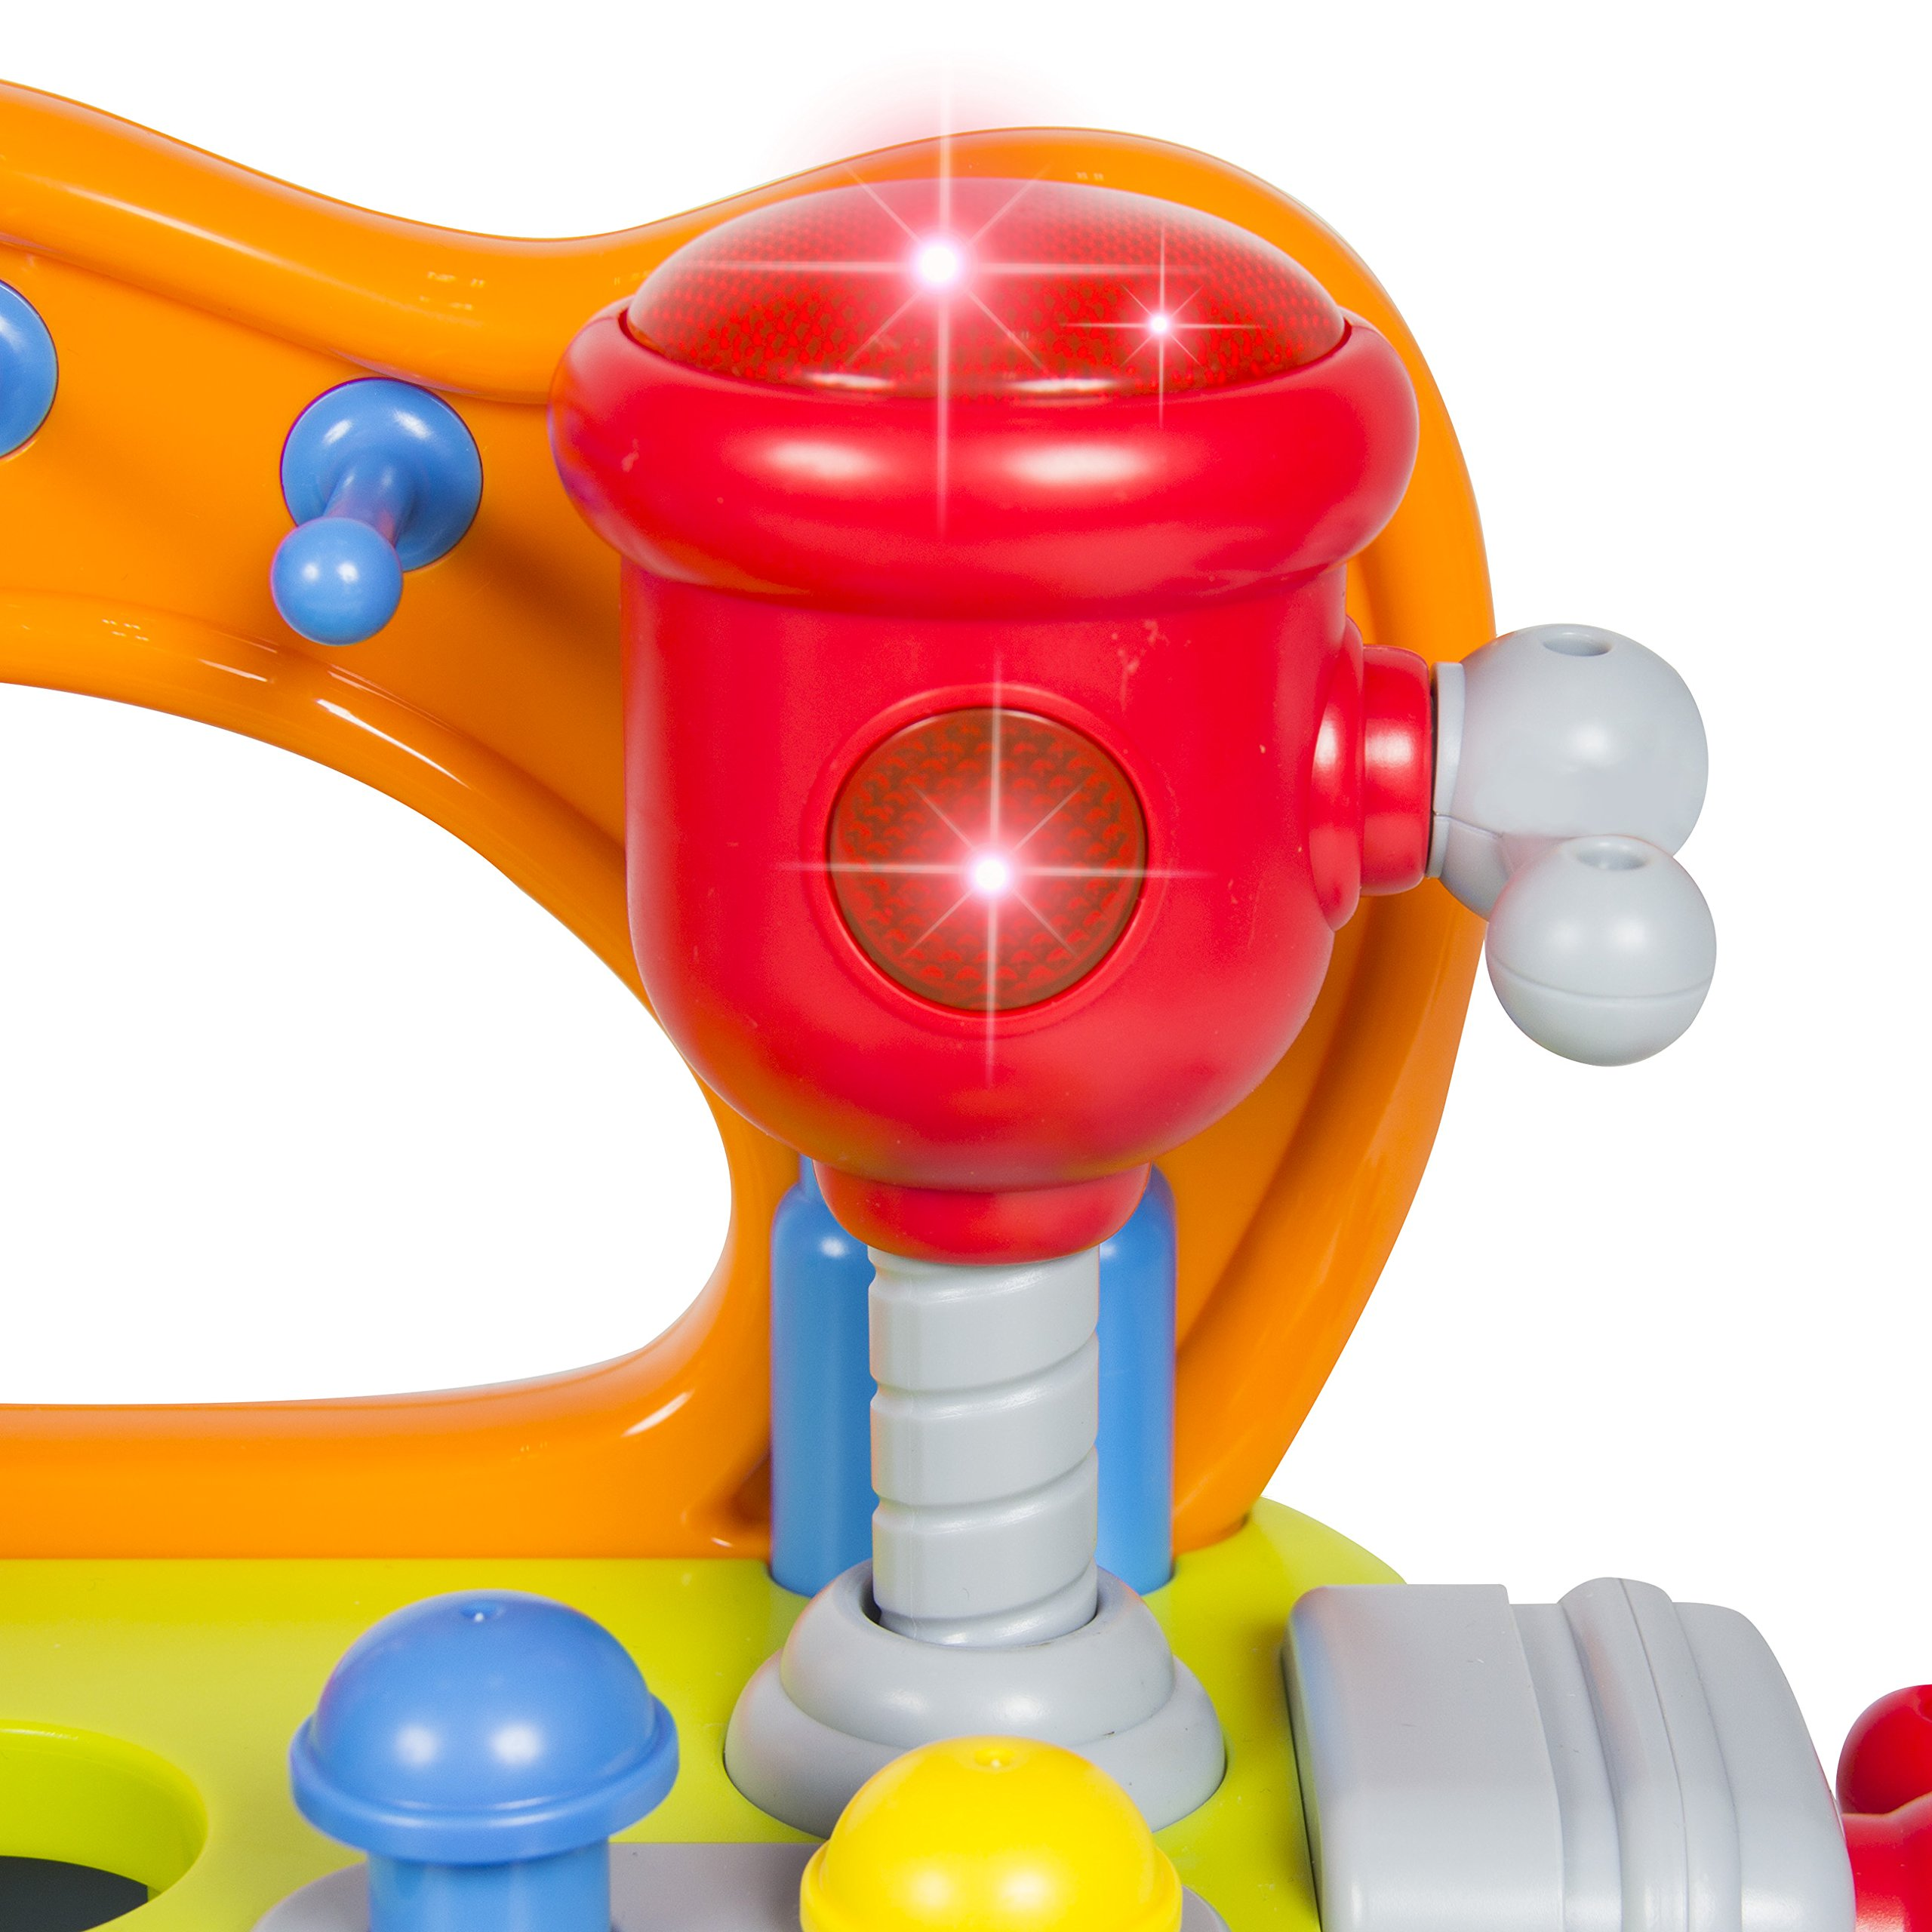 Best Choice Products Musical Learning Pretend Play Tool Workbench Toy, Fun Sound Effects & Lights by Best Choice Products (Image #5)